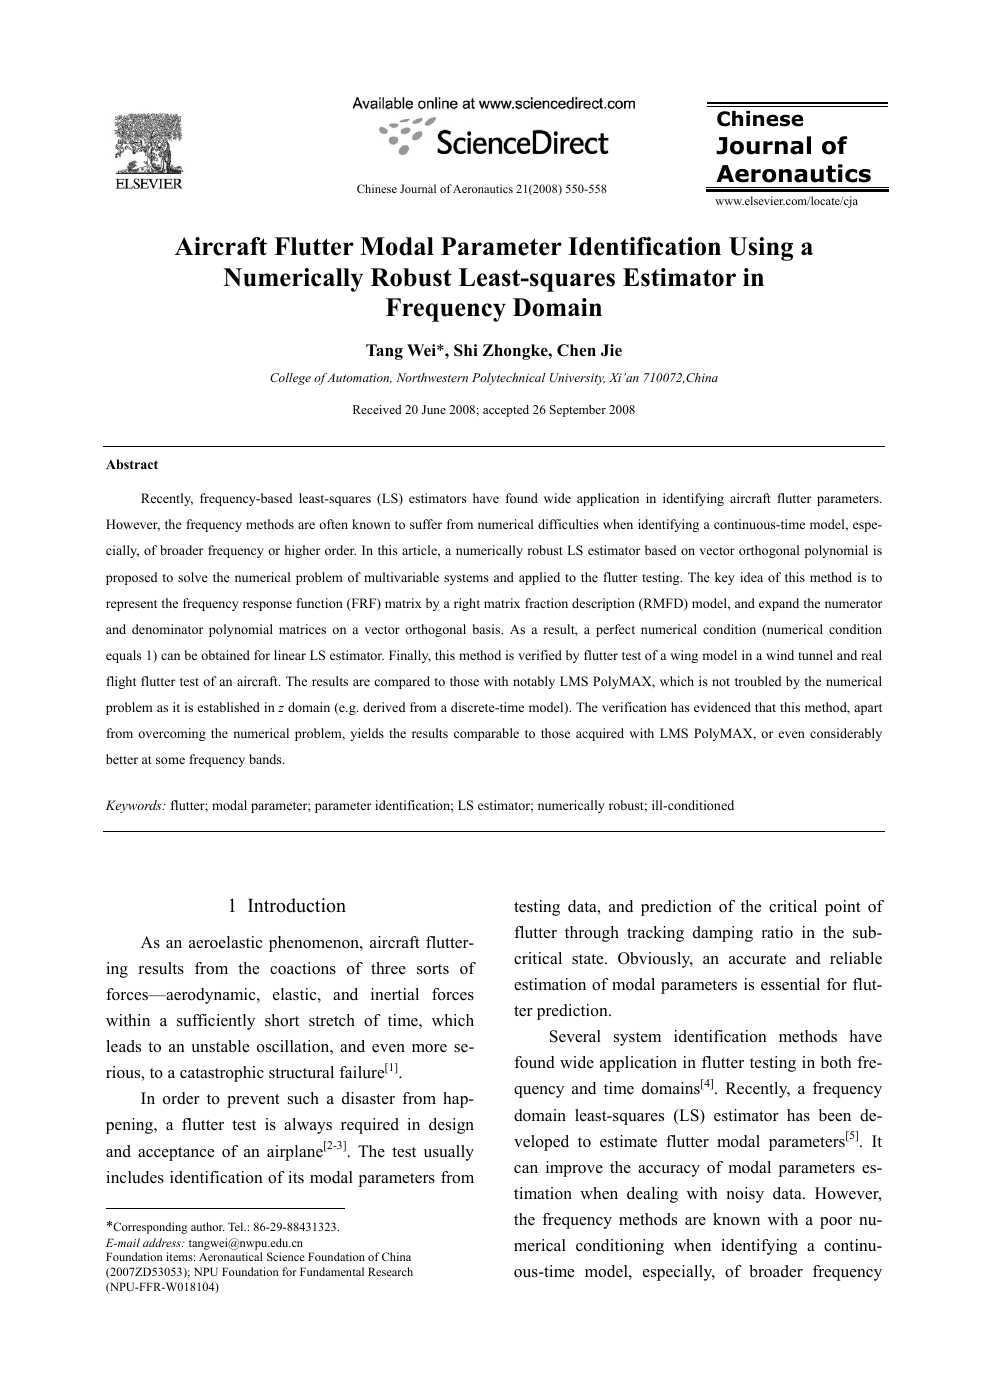 Aircraft Flutter Modal Parameter Identification Using a Numerically